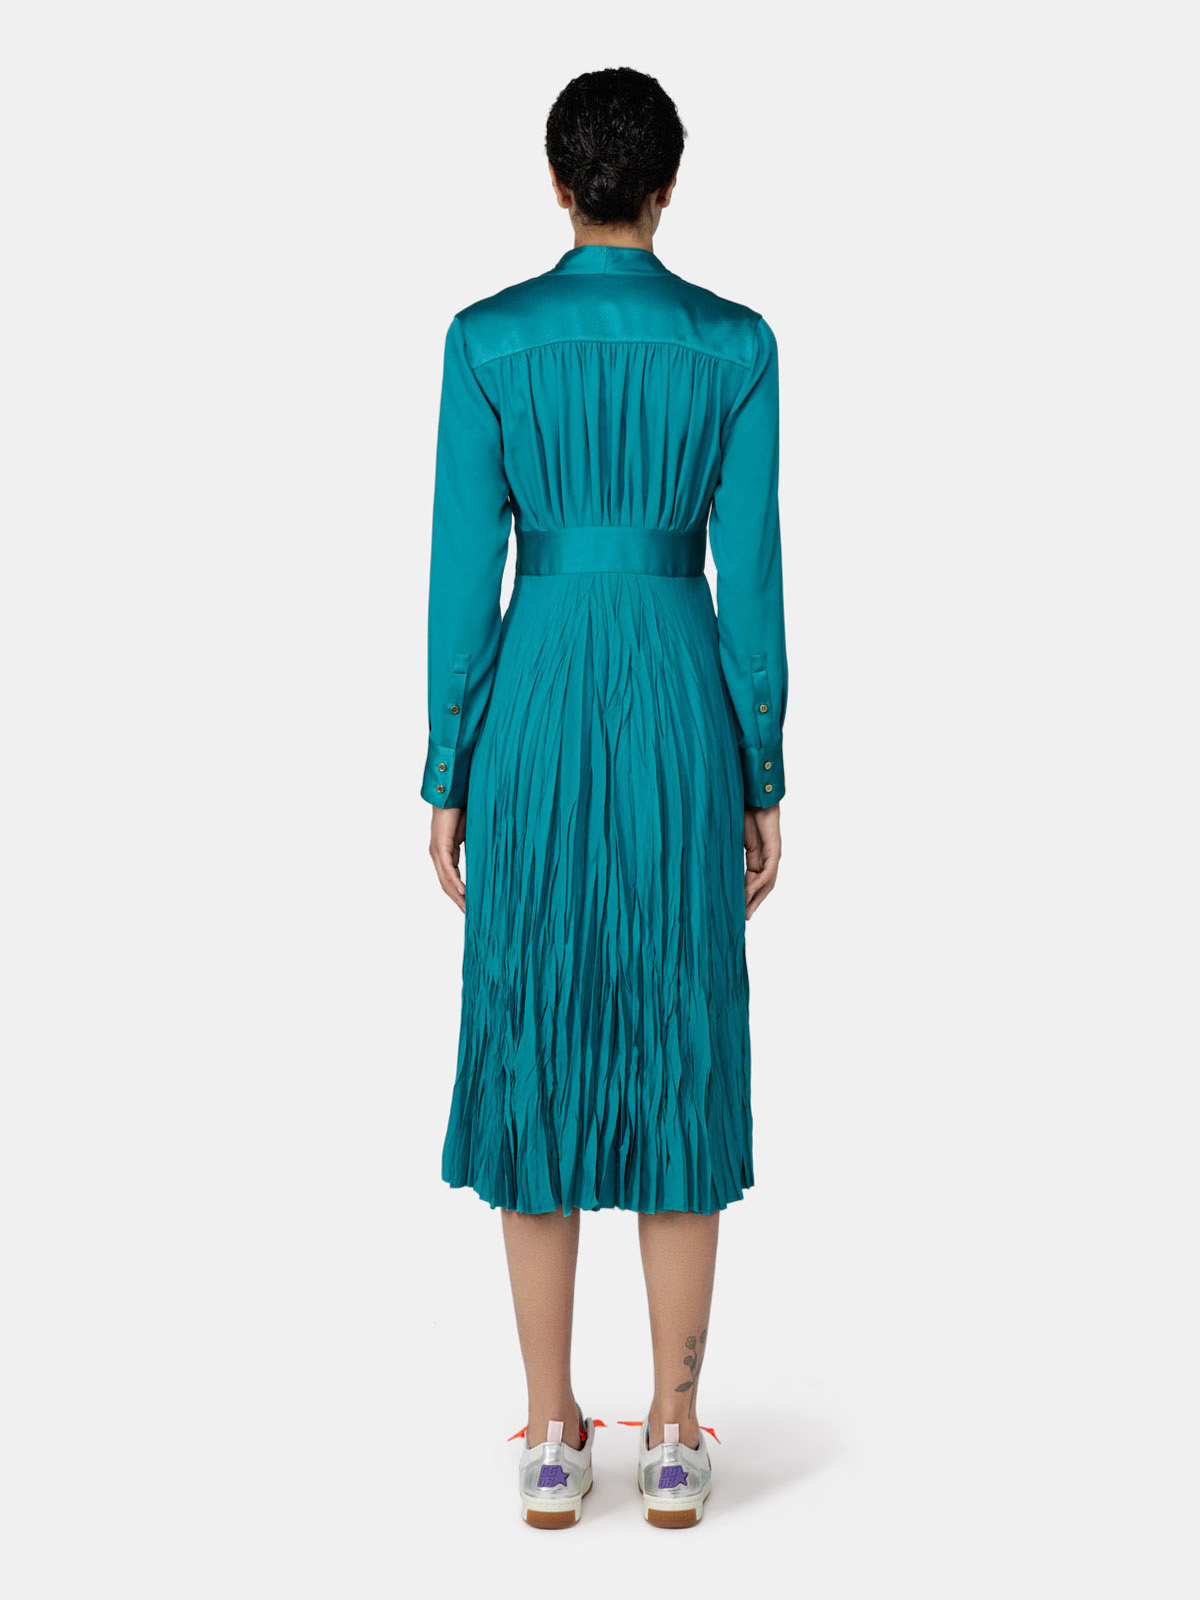 Golden Goose - Adriana long dress in petrol green with pleats in